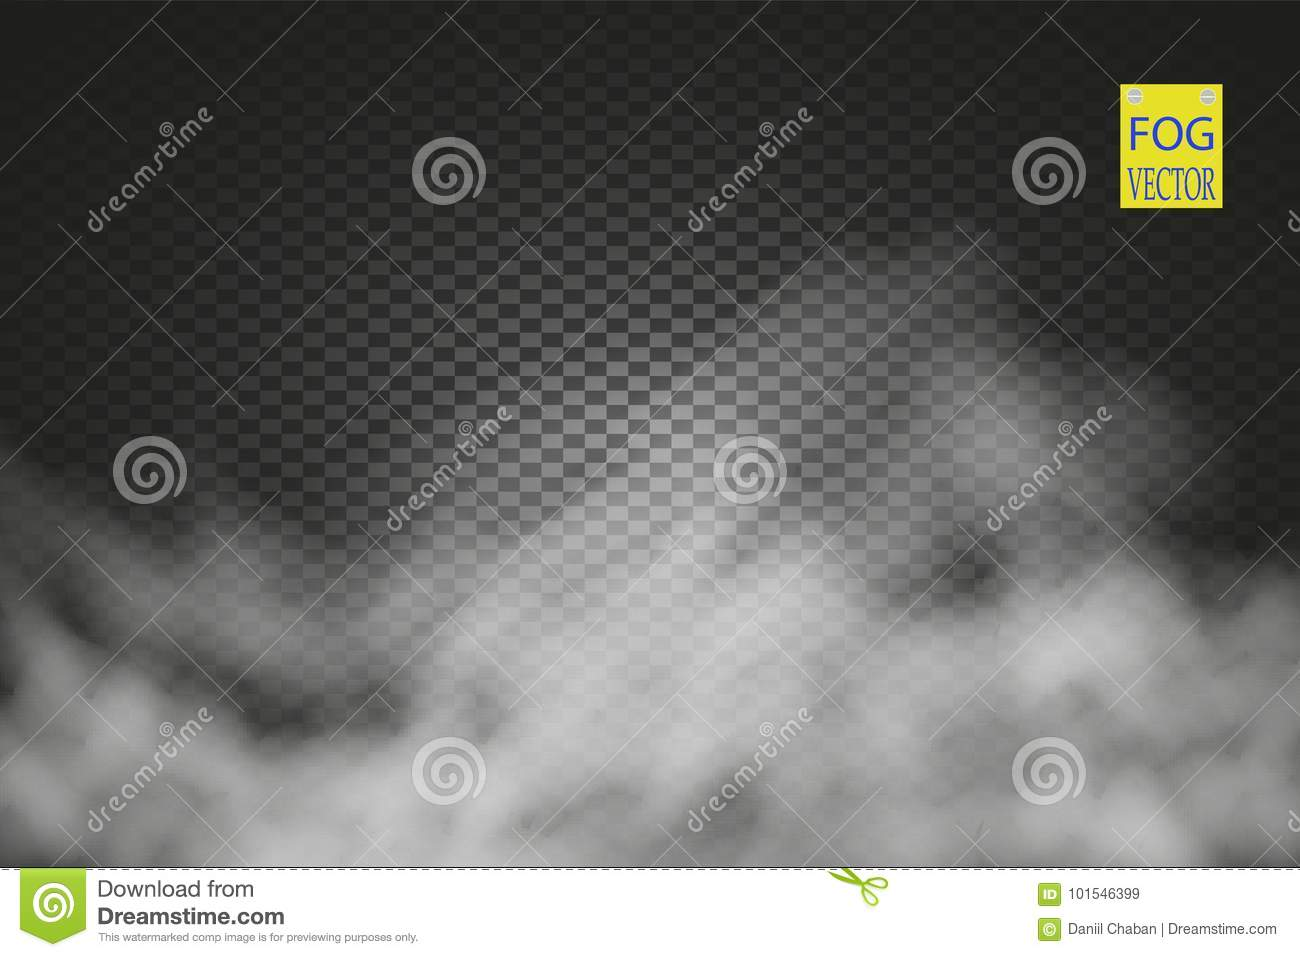 Fog or smoke transparent special effect. White vector cloudiness, mist or smog background. Vector